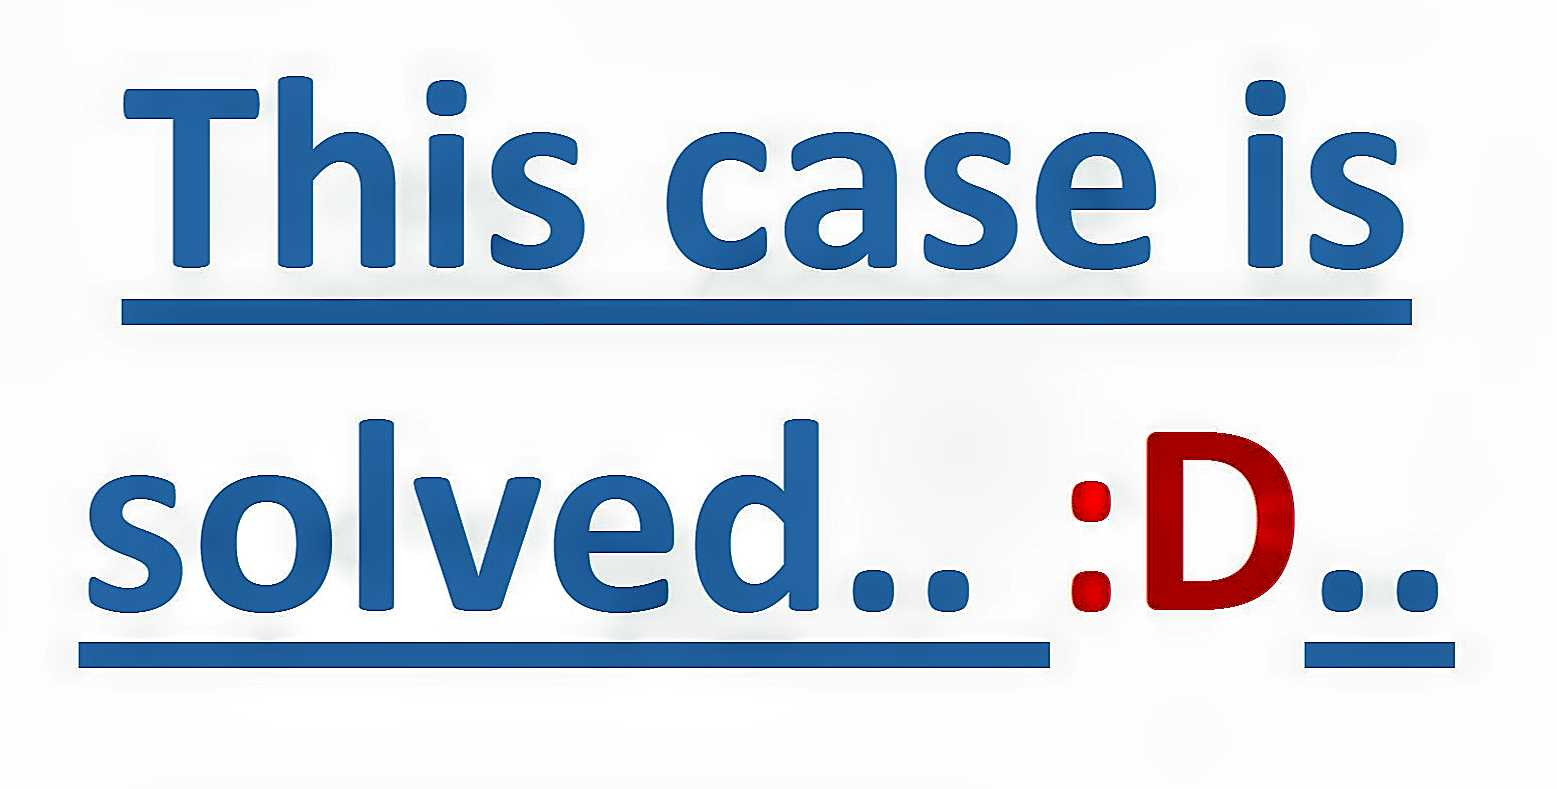 ThisCaseSolved..1b--